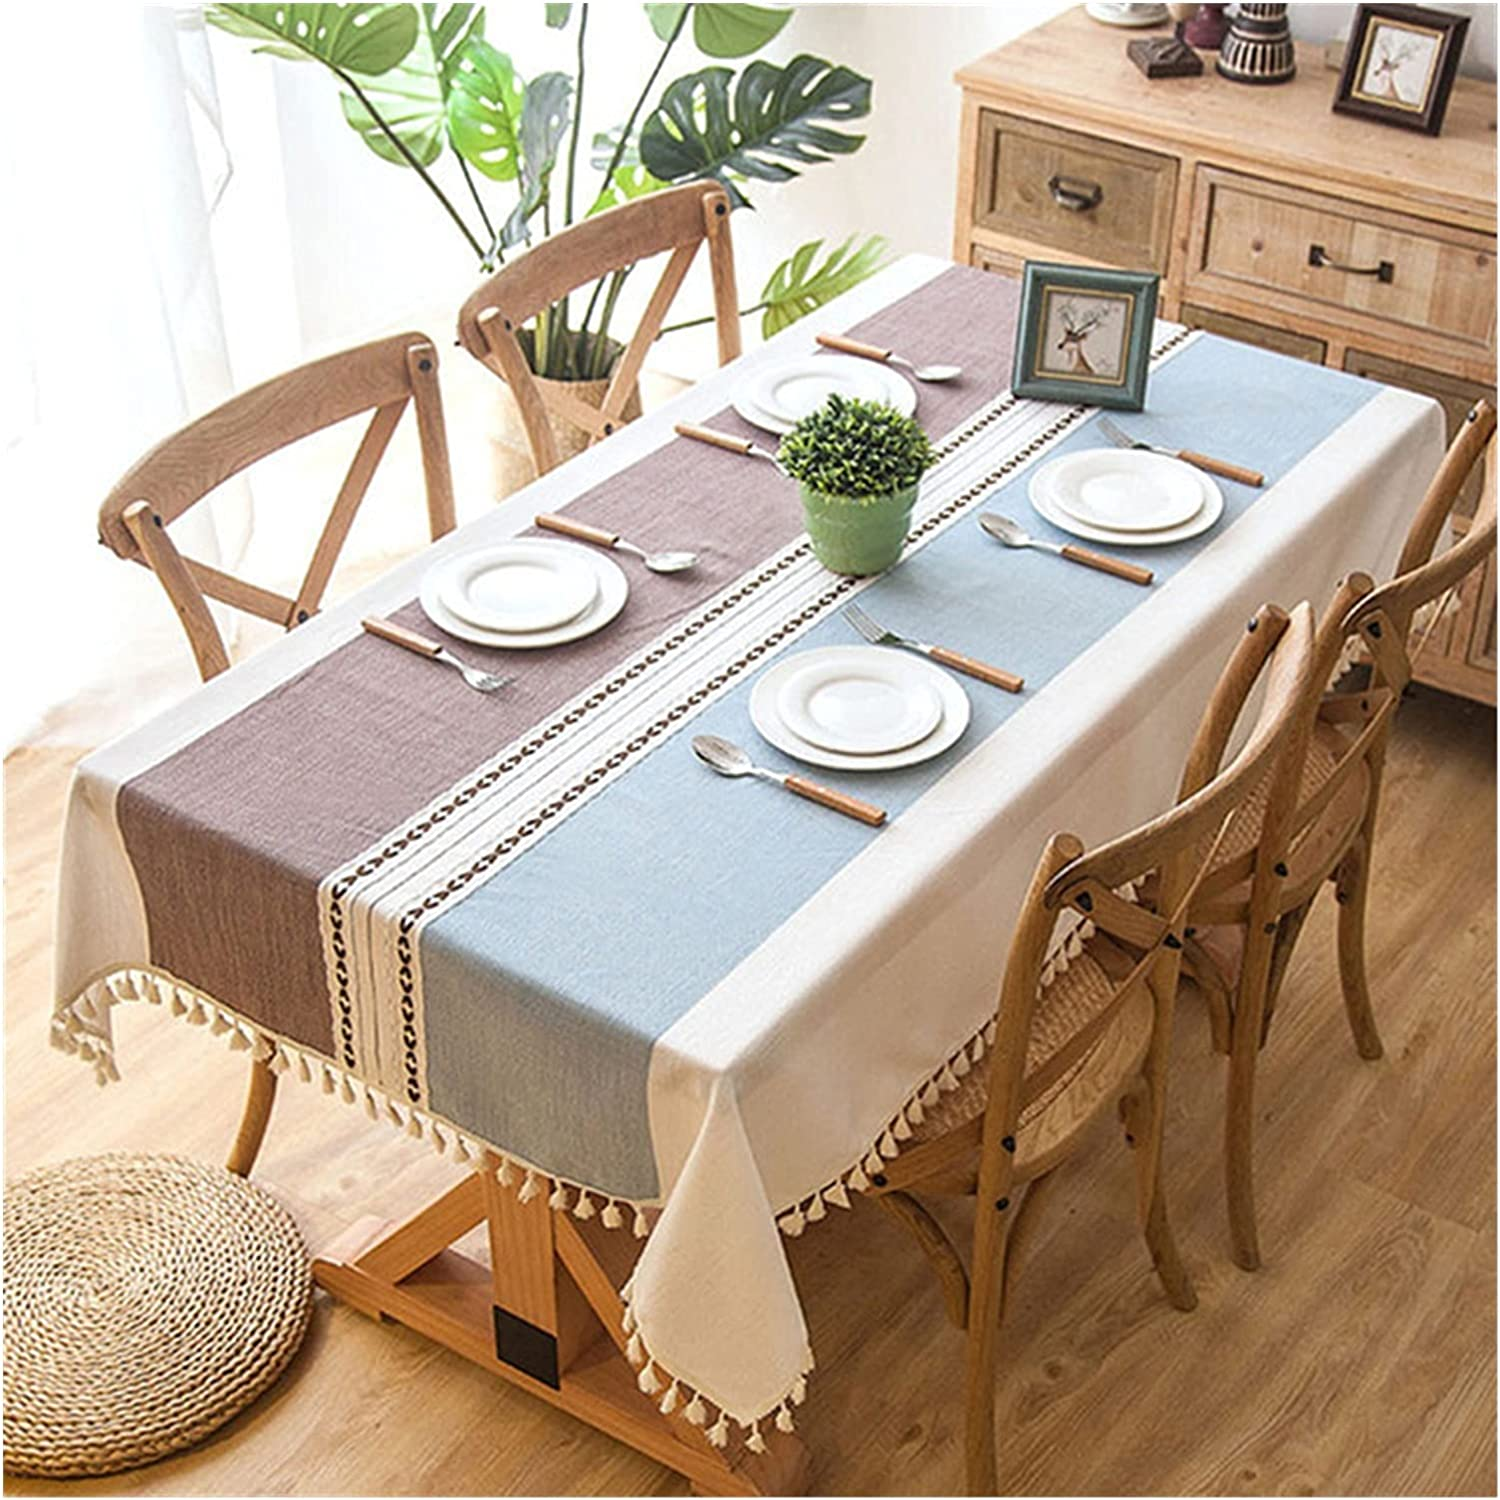 MGGZ Plaid Decorative Max 63% OFF Linen Tablecloth Free shipping on posting reviews Oi with Waterproof Tassel